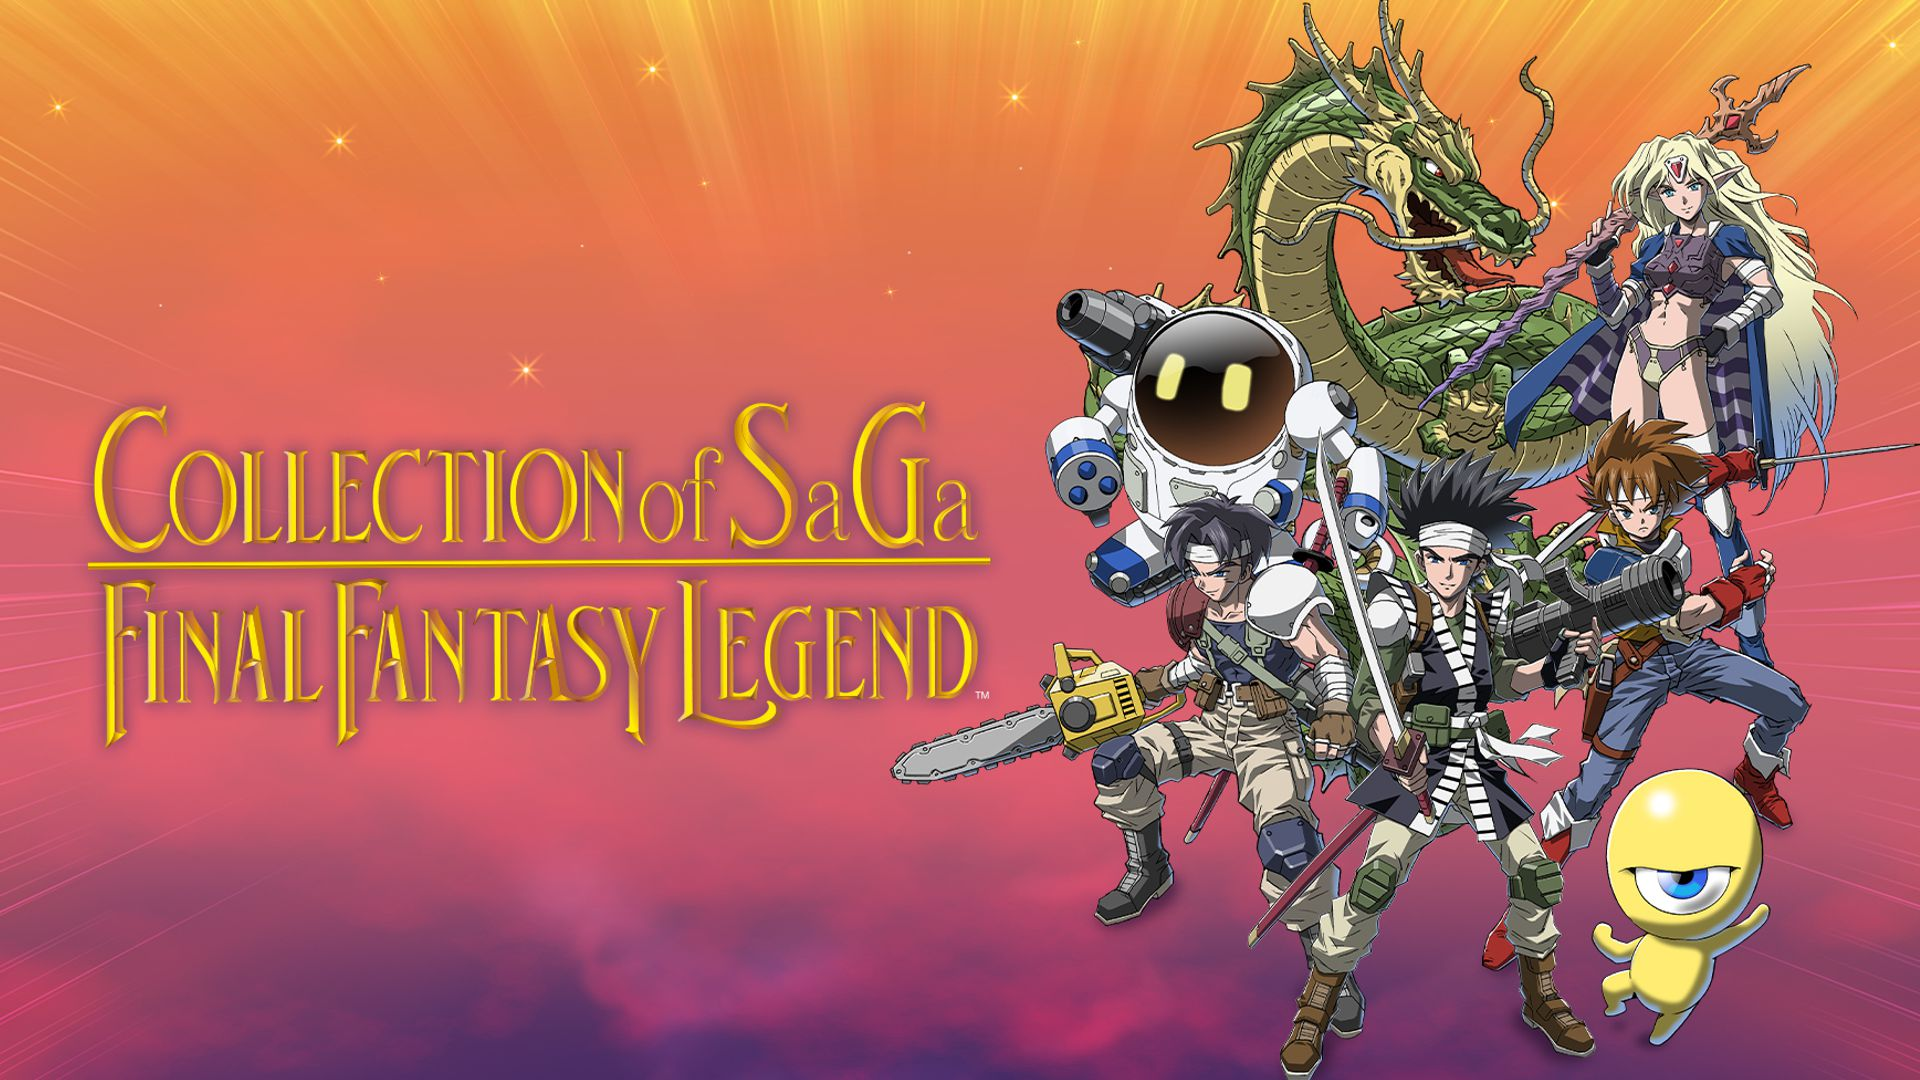 Collection of SaGa Final Fantasy Legend Principal